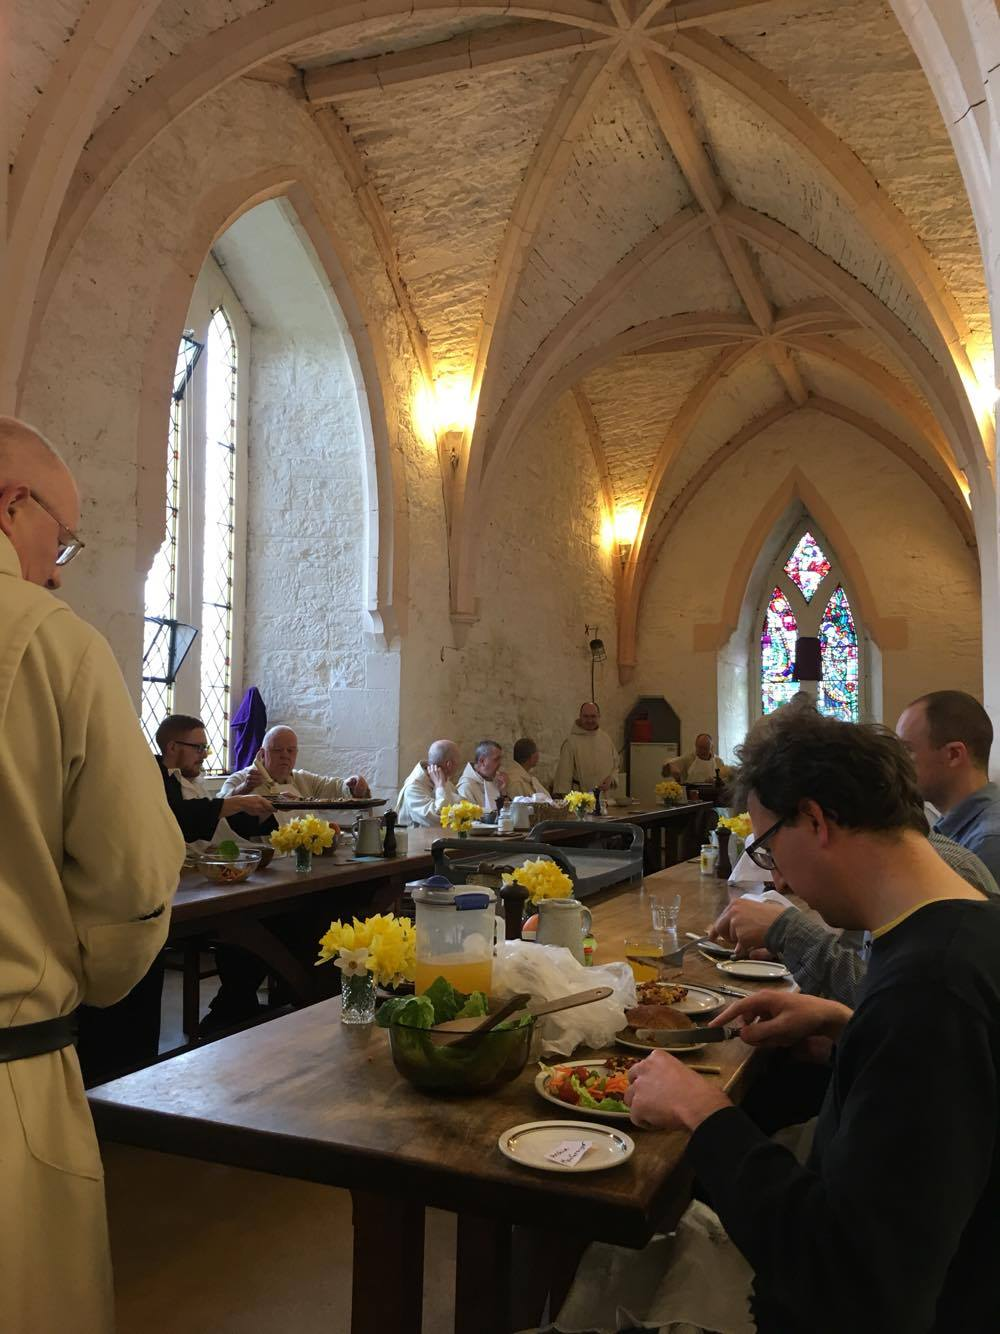 The Agape supper on Holy Thursday evening